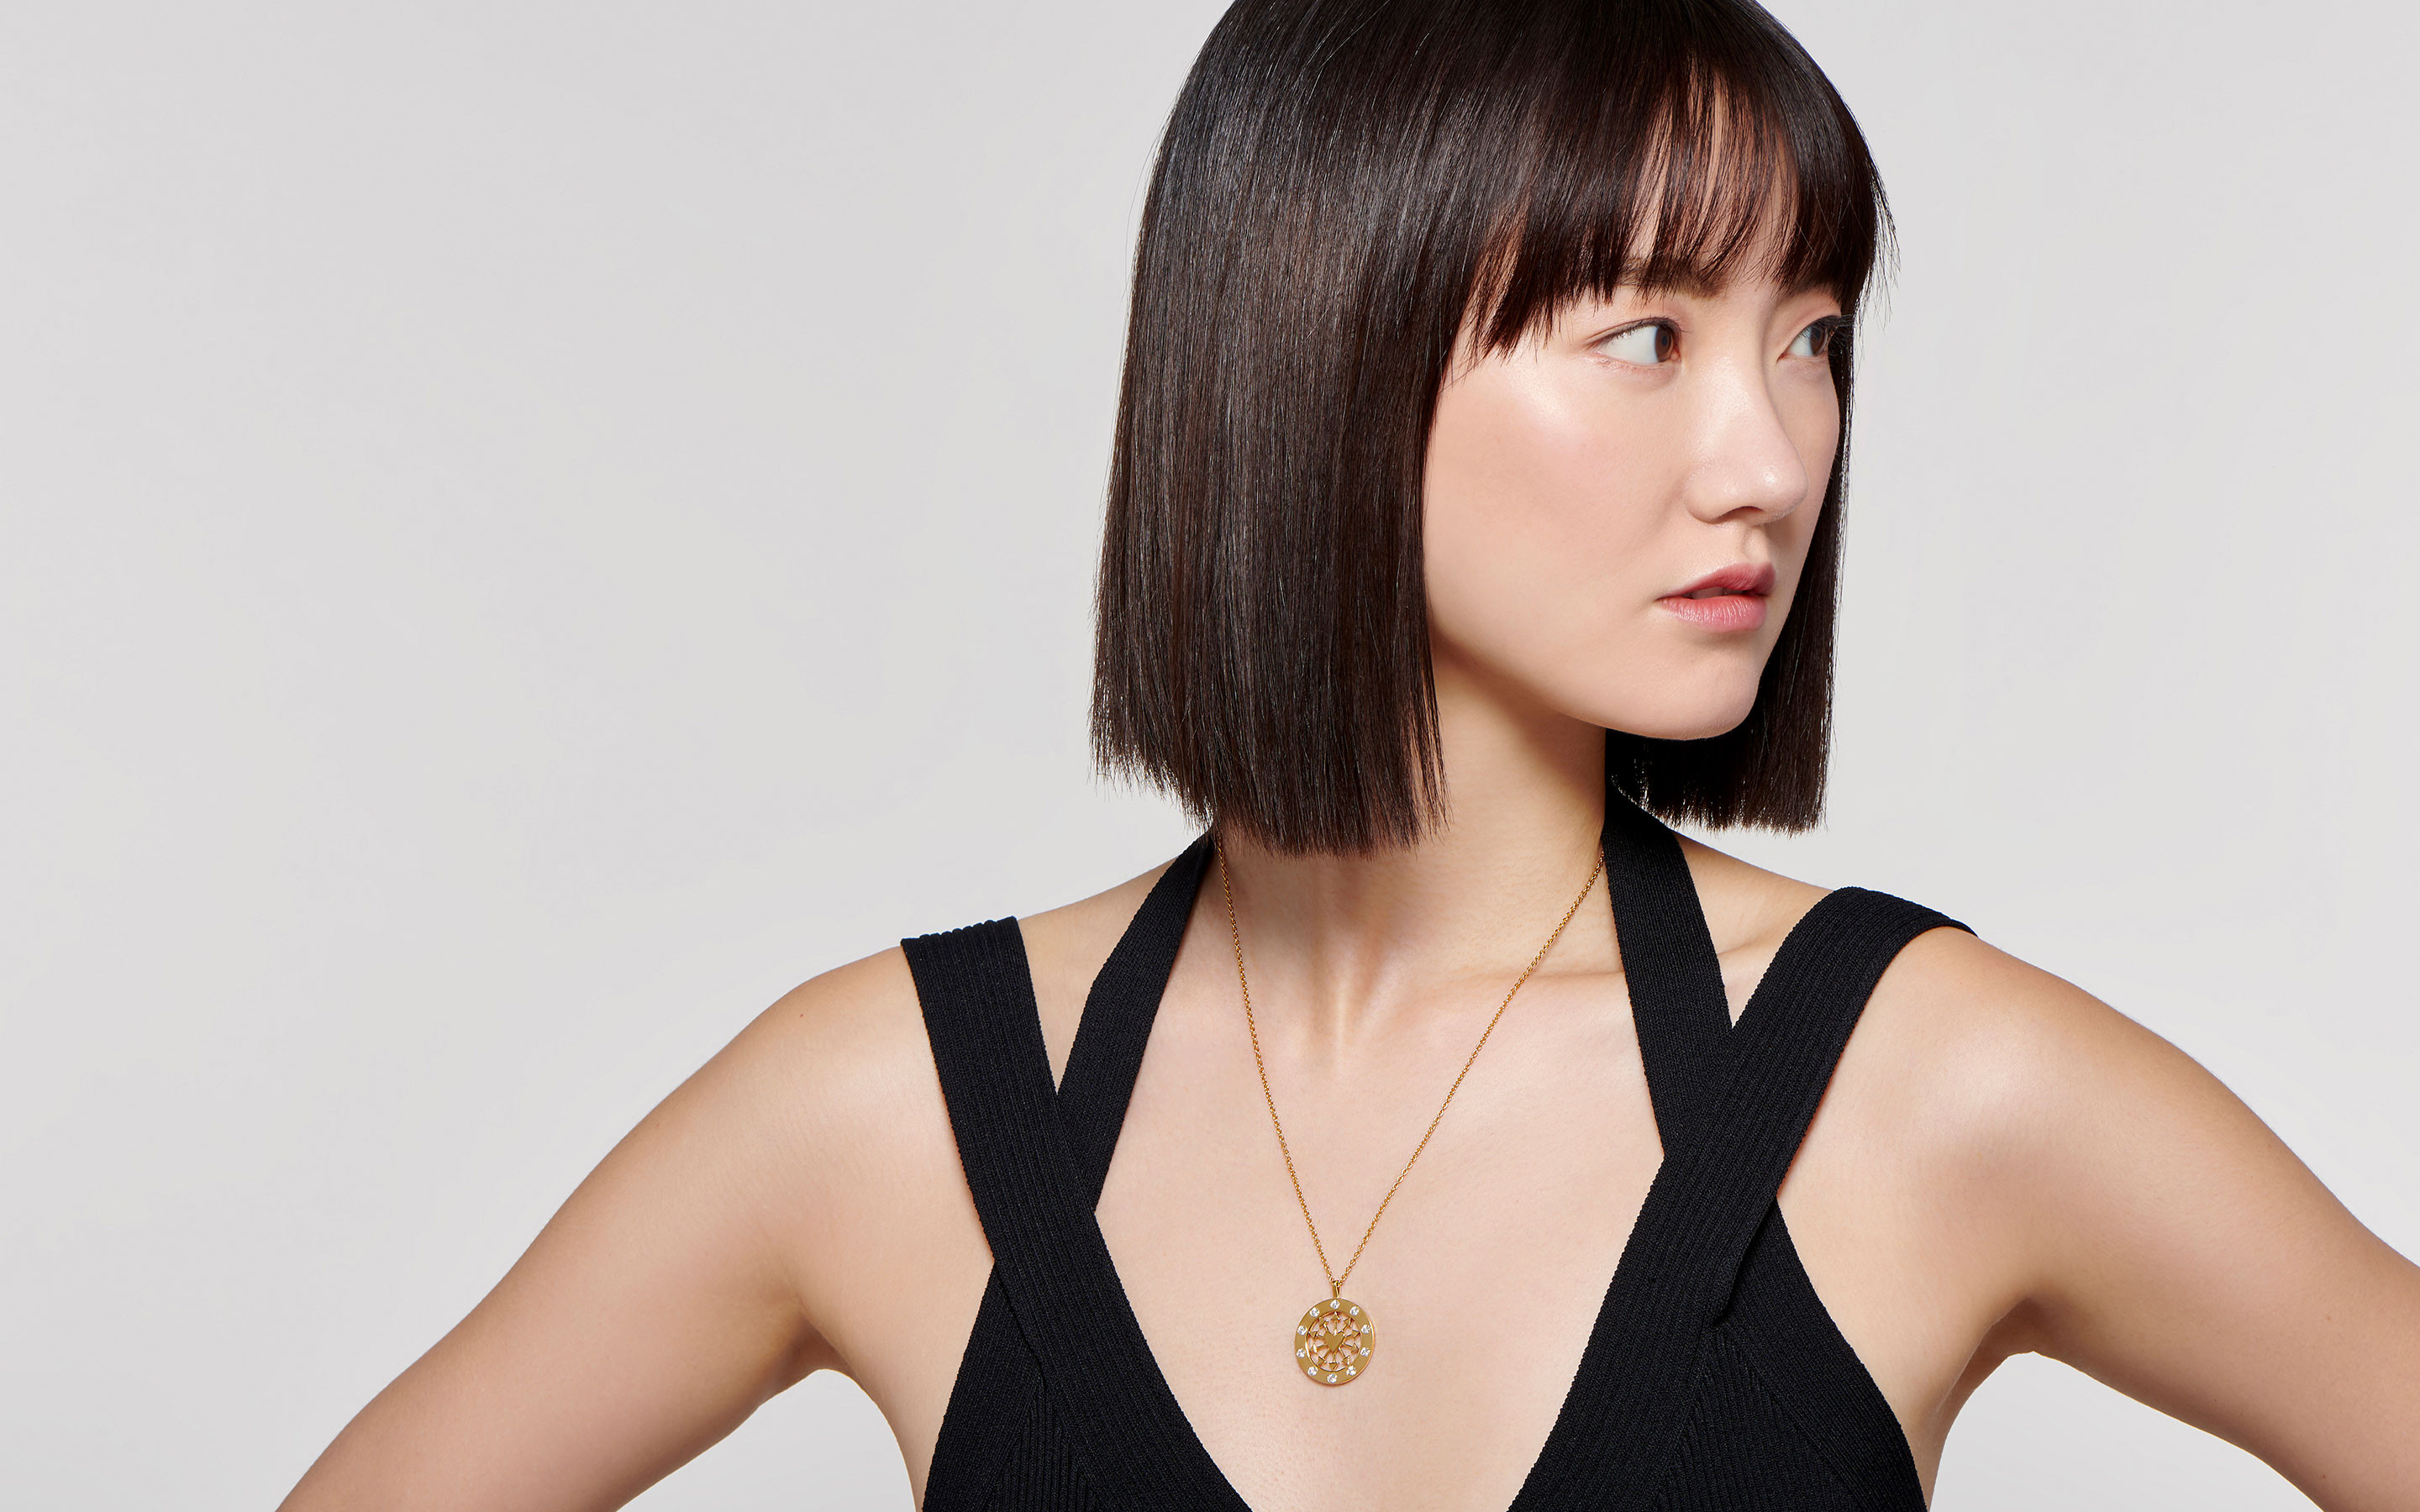 elegant East Asian female model wearing sleek pendant medallion neck chain fashioned of 22 karat polished gold with diamonds